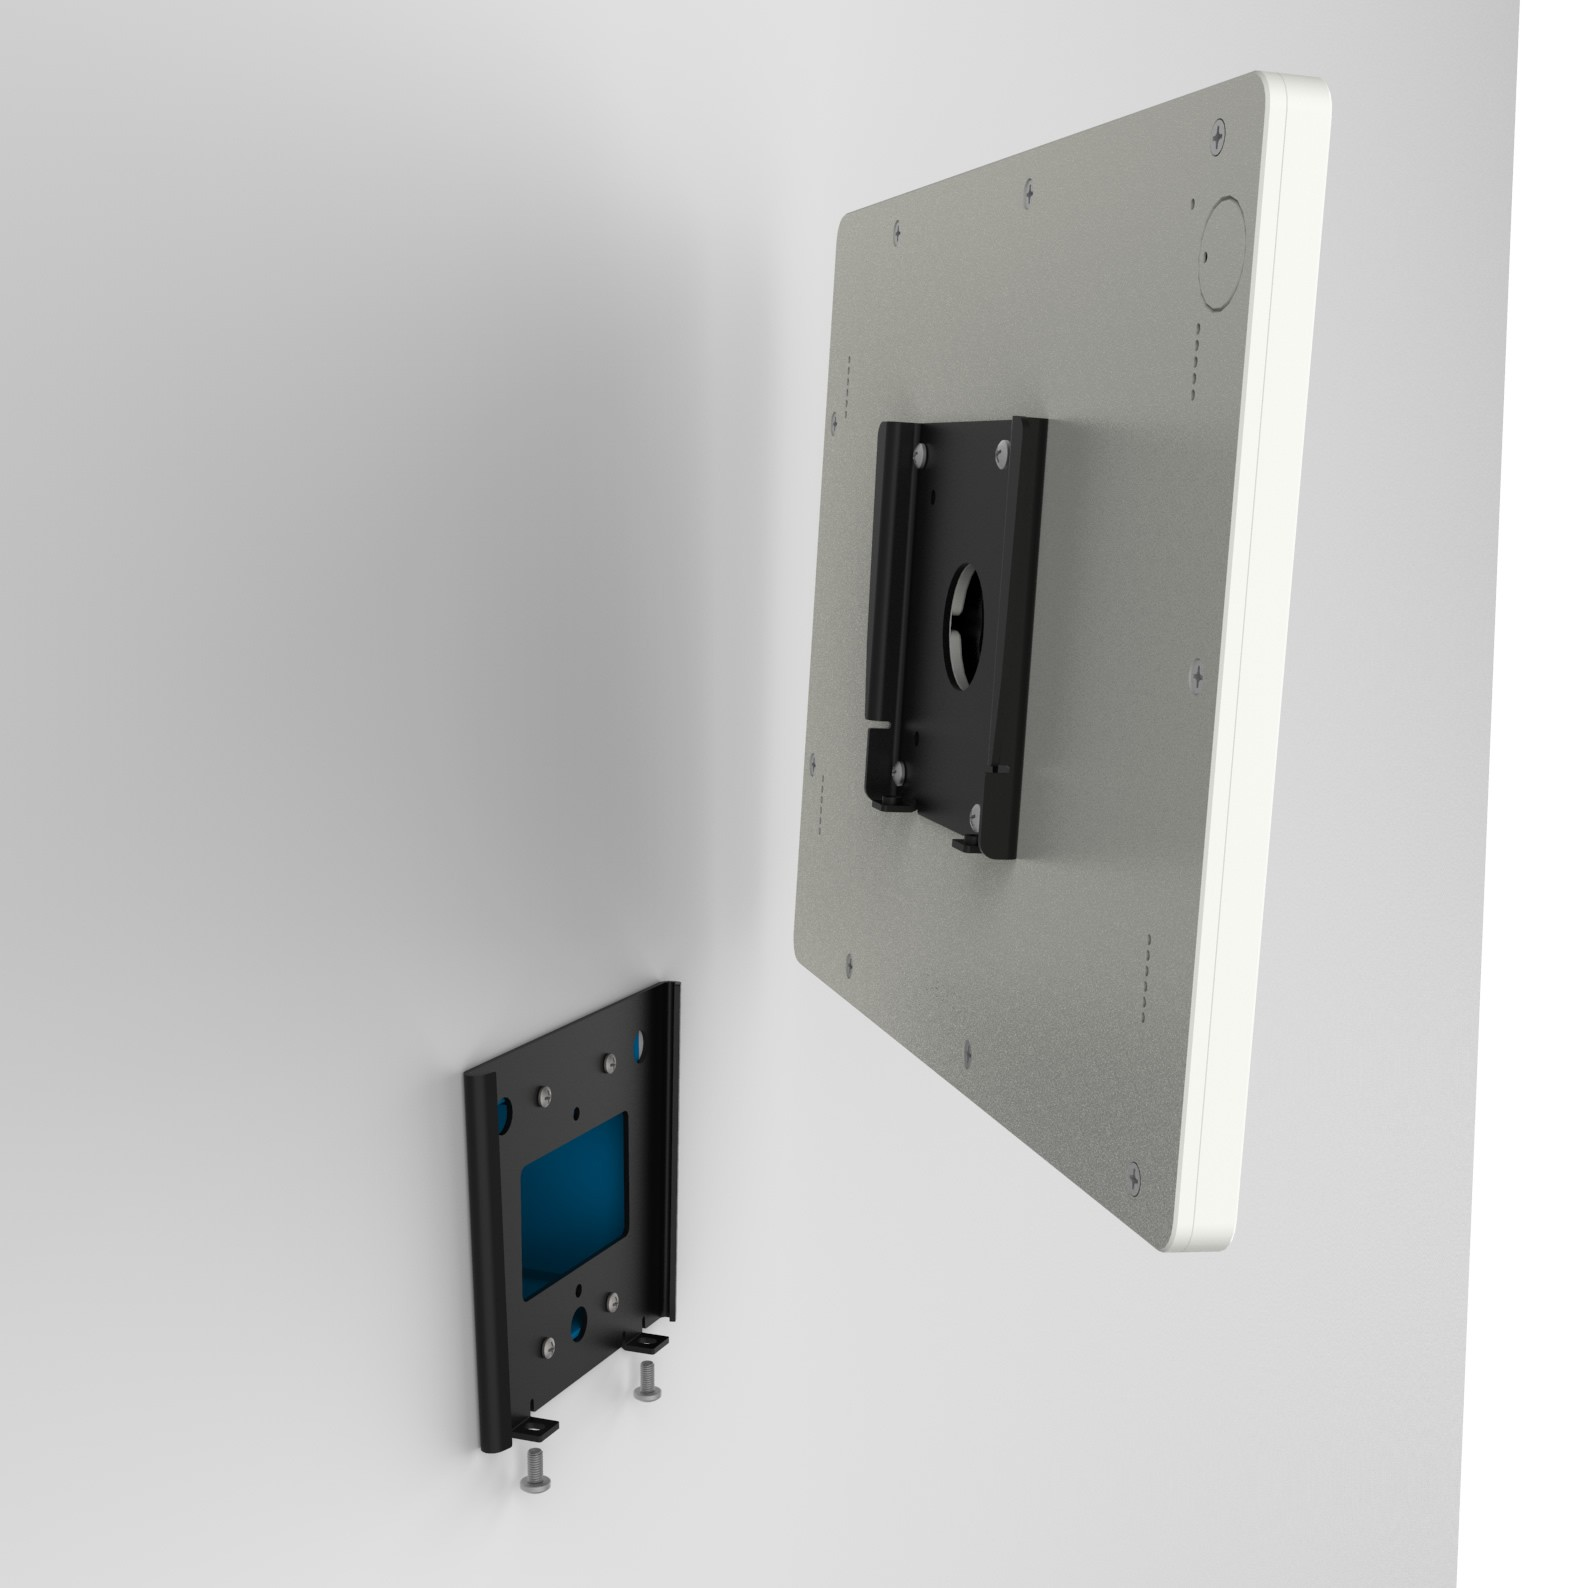 10 Inch Tablet Secure Wall Mount